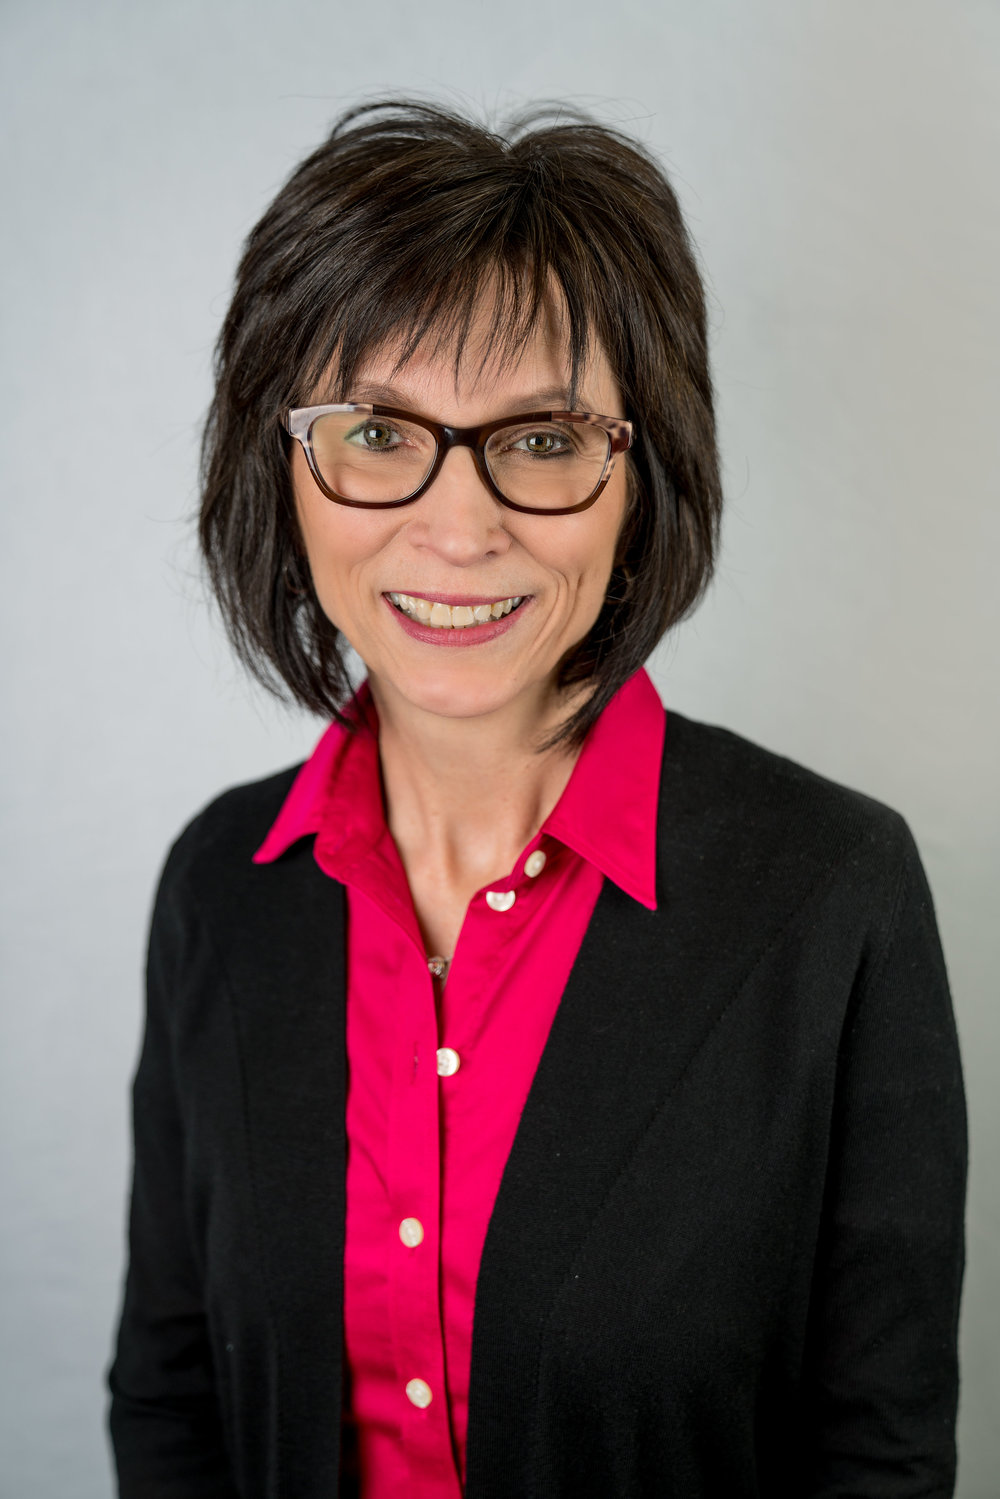 Karen Kelner - Veteran of the advertising and marketing world, having worked 30+ years in this industry. She graduated from MSUM with B.S. in Mass Communication and a Minor in Broadcast Journalism. She worked for 22 years as an account executive for Multiple Media Consultants before opening Kelner Communications, a company focused on planning and executing multimedia advertising campaigns. She is married and has two grown children, Nathan and Sarah, as well as two grandchilden, Raya and Walker. She previously served on the board for the YWCA and currently serves on the Red River Zoo board. Her mother has parkinsonism and she has experienced firsthand the lack of knowledge and resources within the community in regards to the effects of Parkinson's.